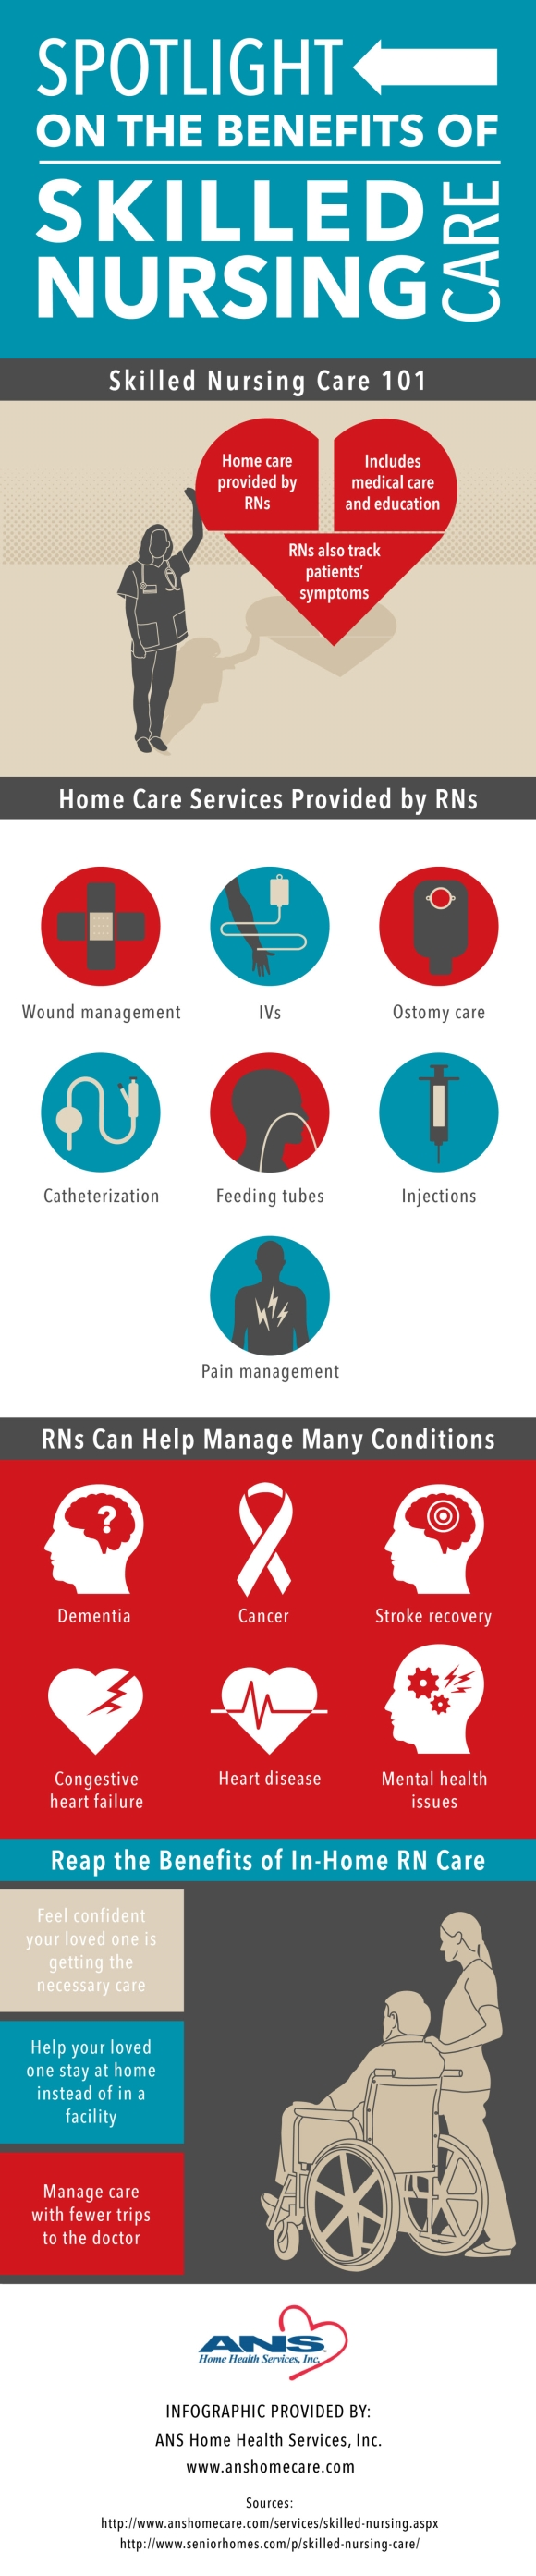 benefits-of-skilled-nursing-infographic